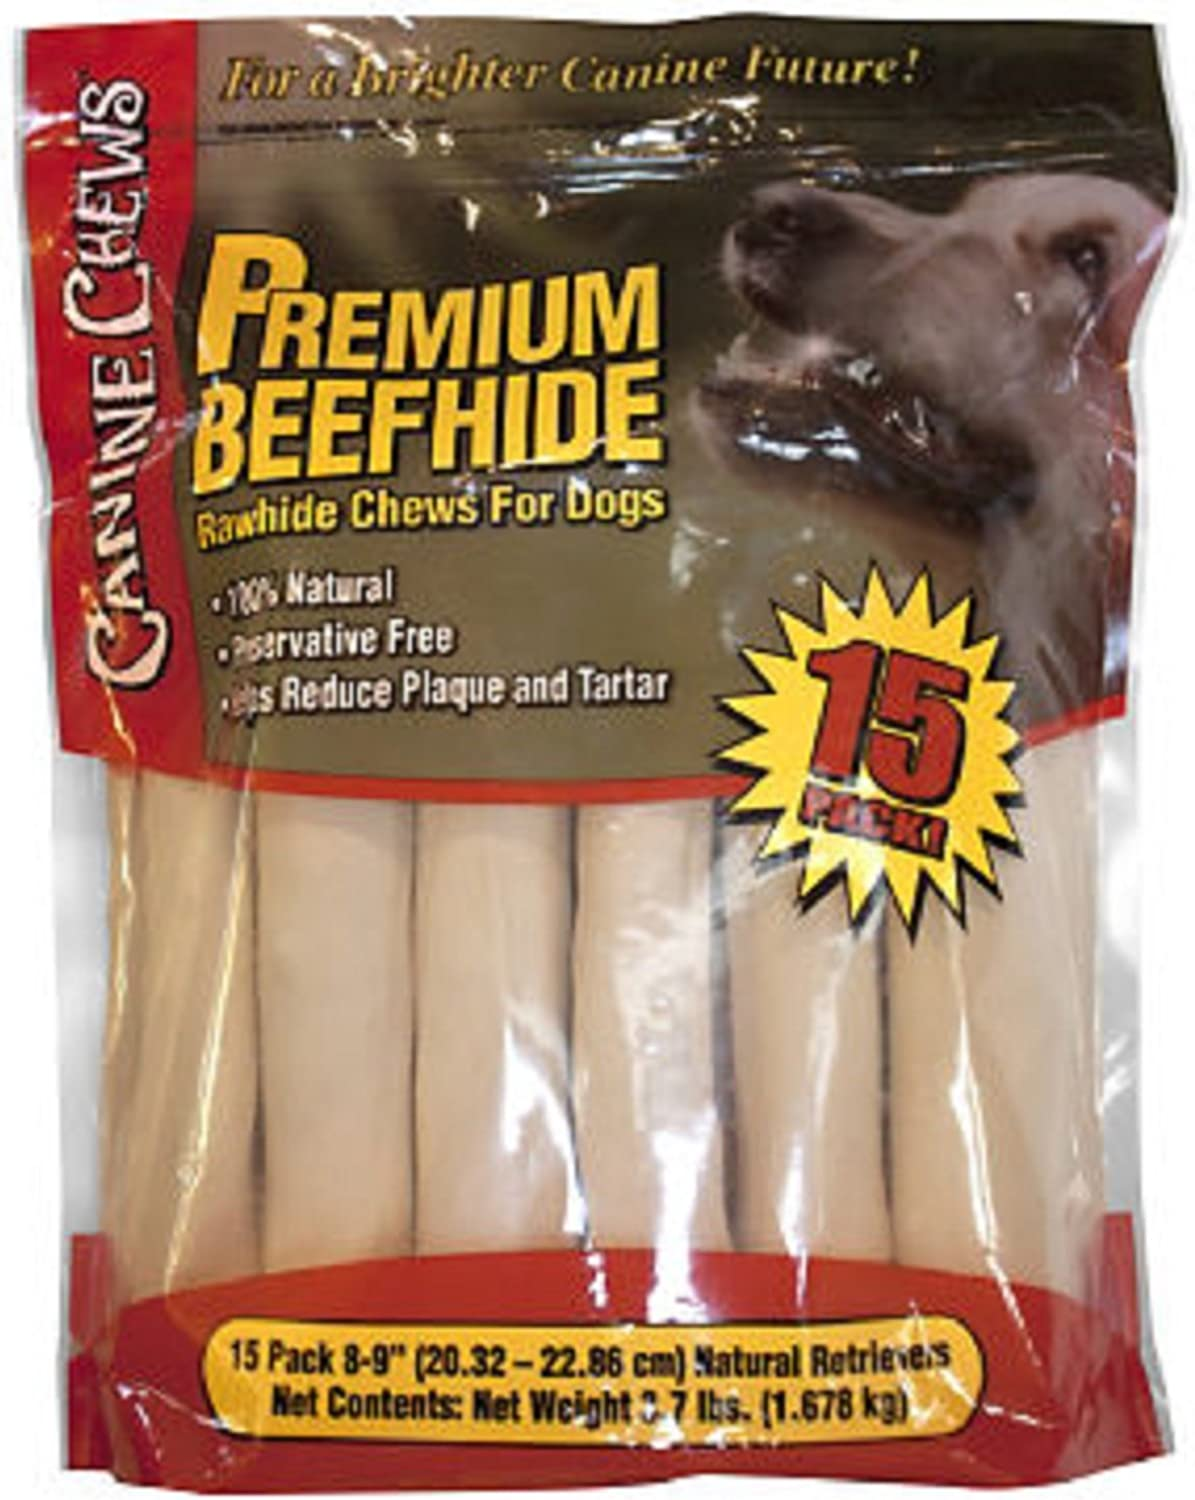 Canine Chews Premium All-Natural Beef Hide Canine Retrievers - 15 pk. - 3.7 lb. by Sam's Club